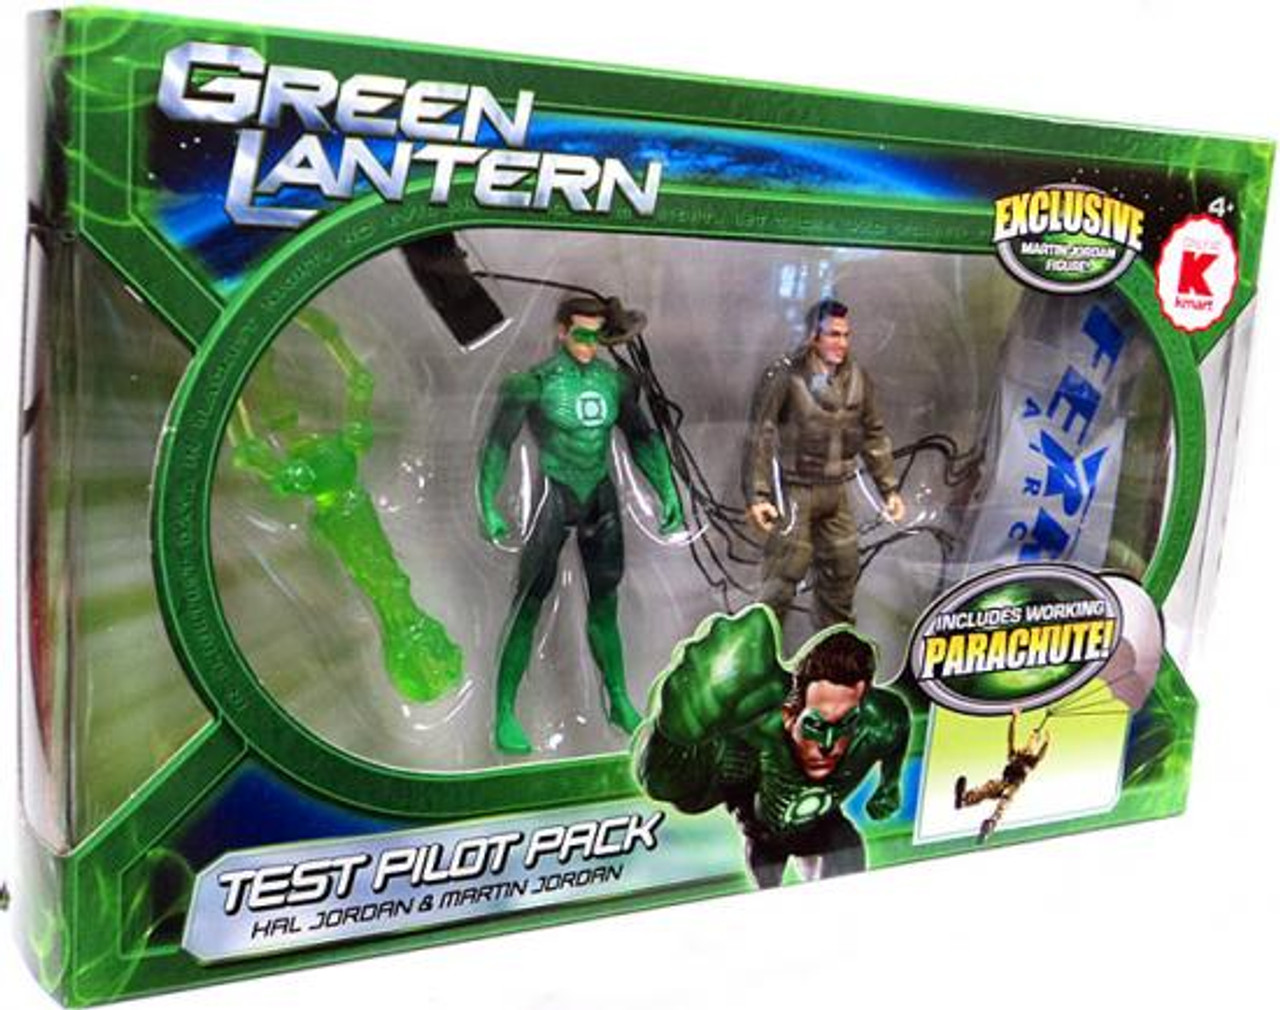 Green Lantern Movie Test Pilot Pack Exclusive Action Figure 2-Pack